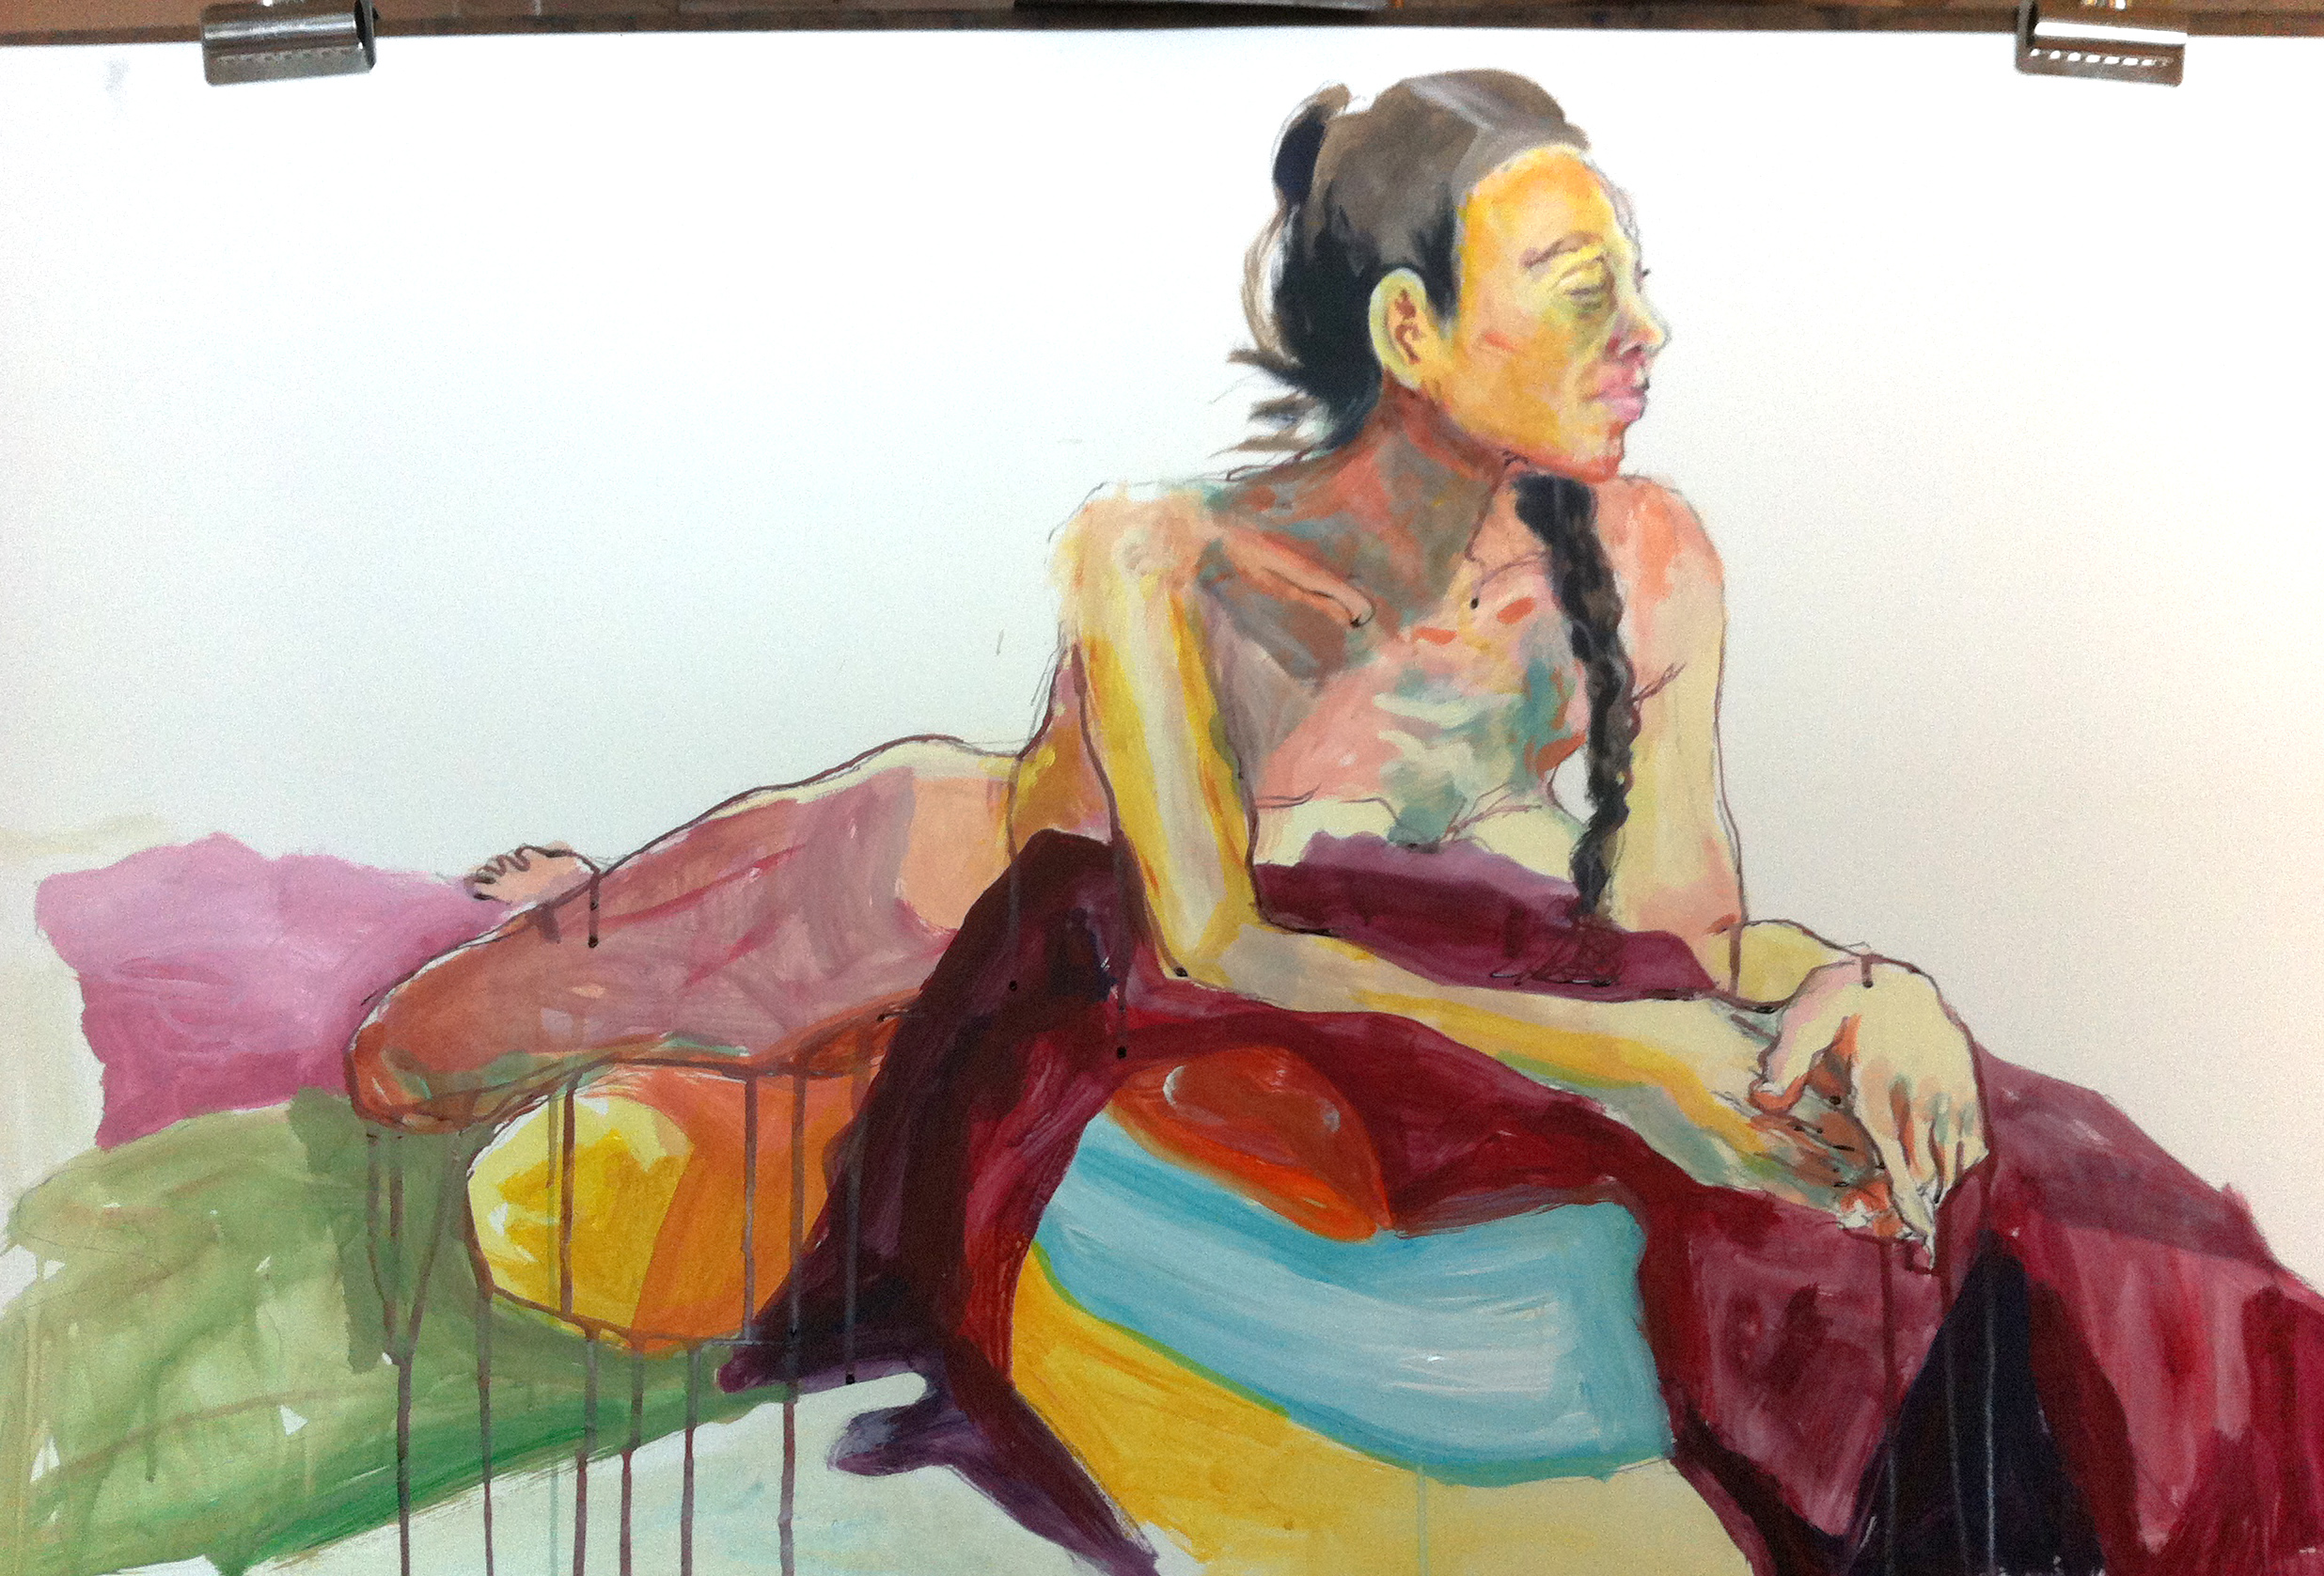 Nude and Blankets. Mixed Media. 2015